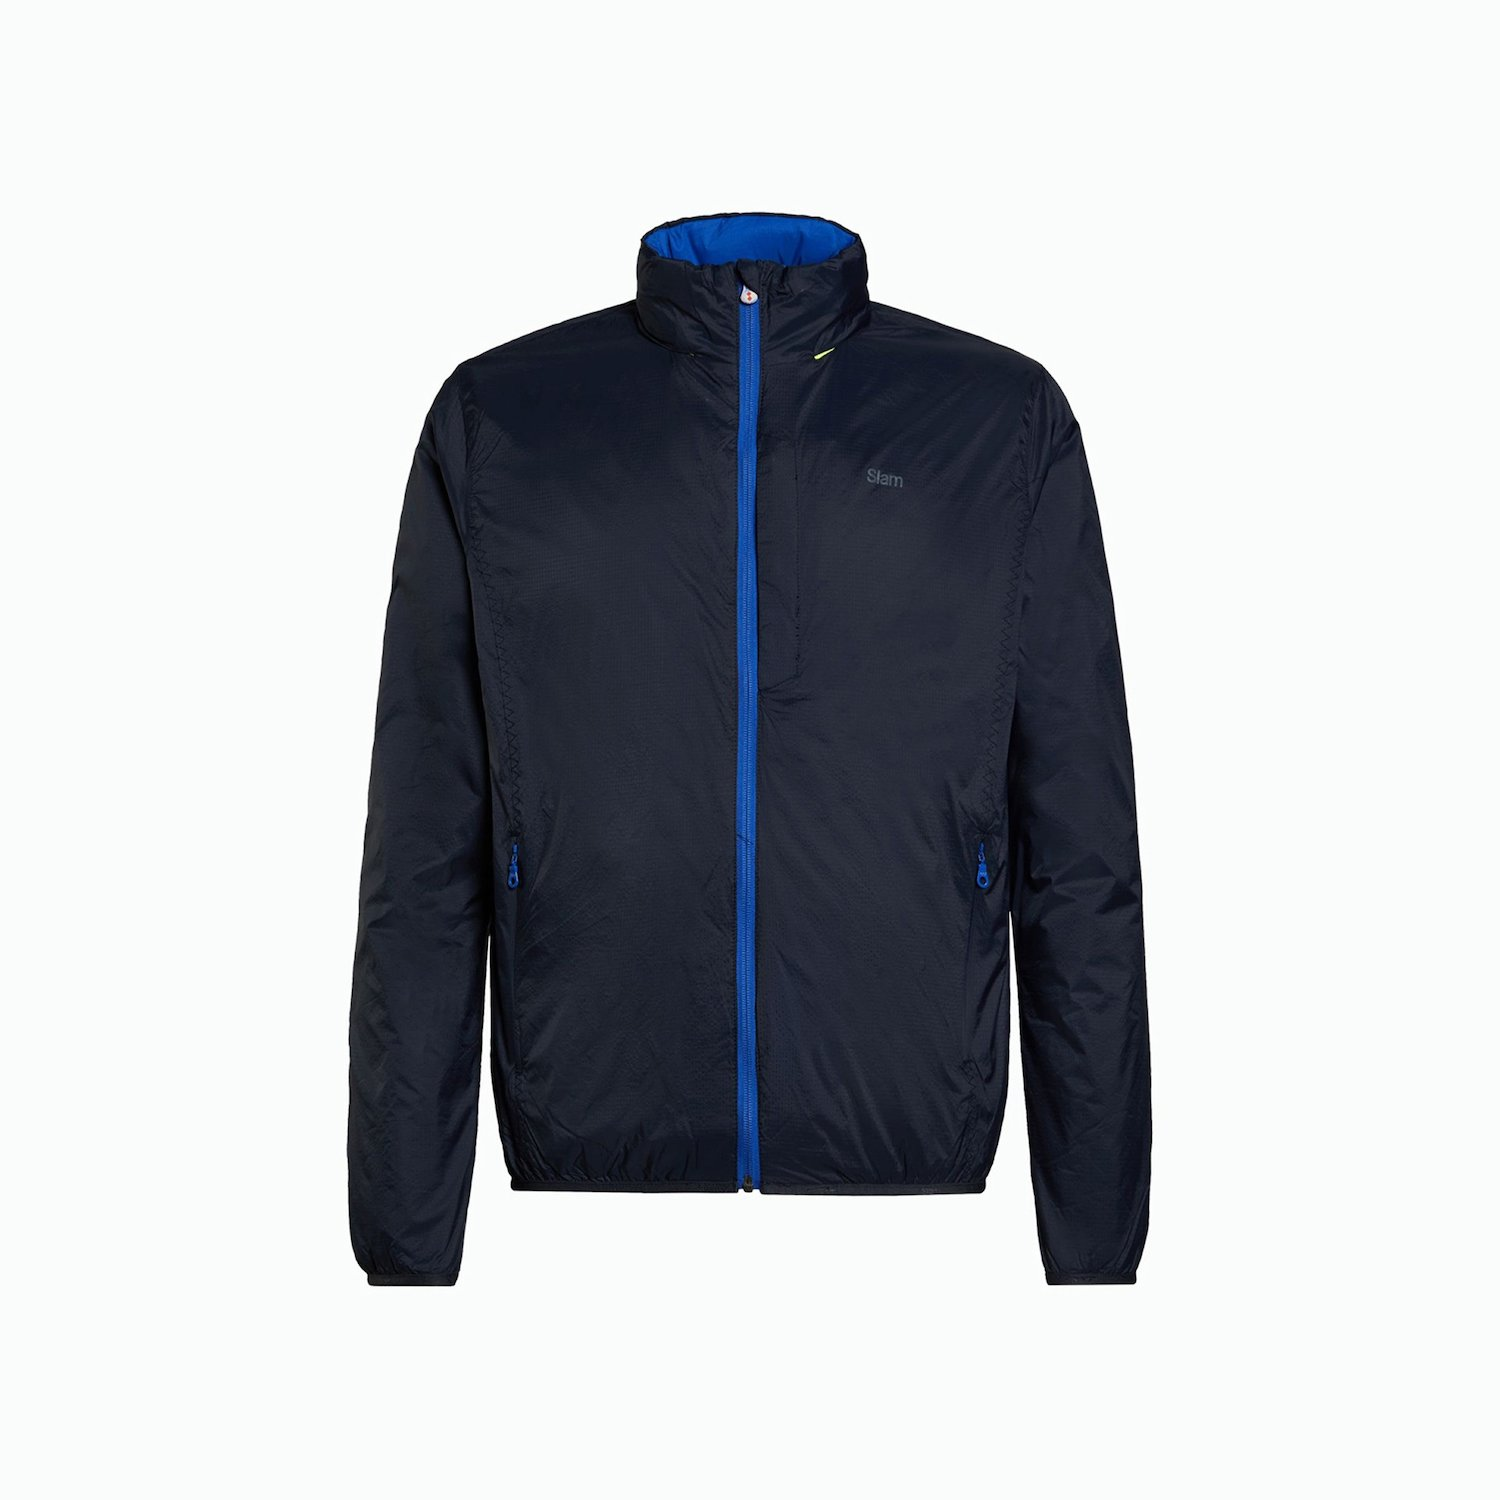 Jacket Blow Evo (MRW) - Marinenblau